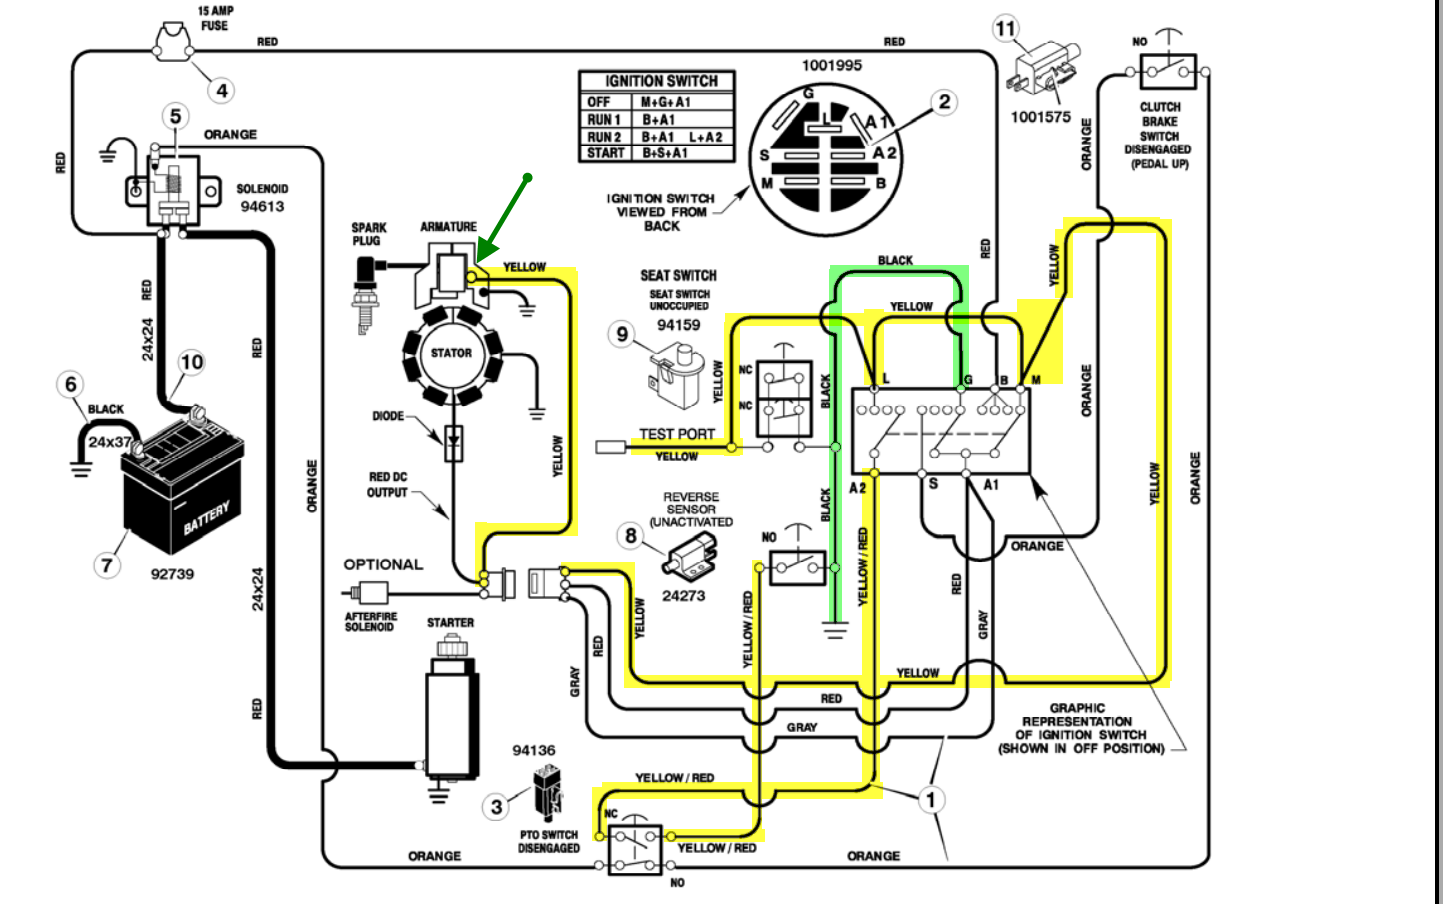 35 Vanguard Wiring Diagram